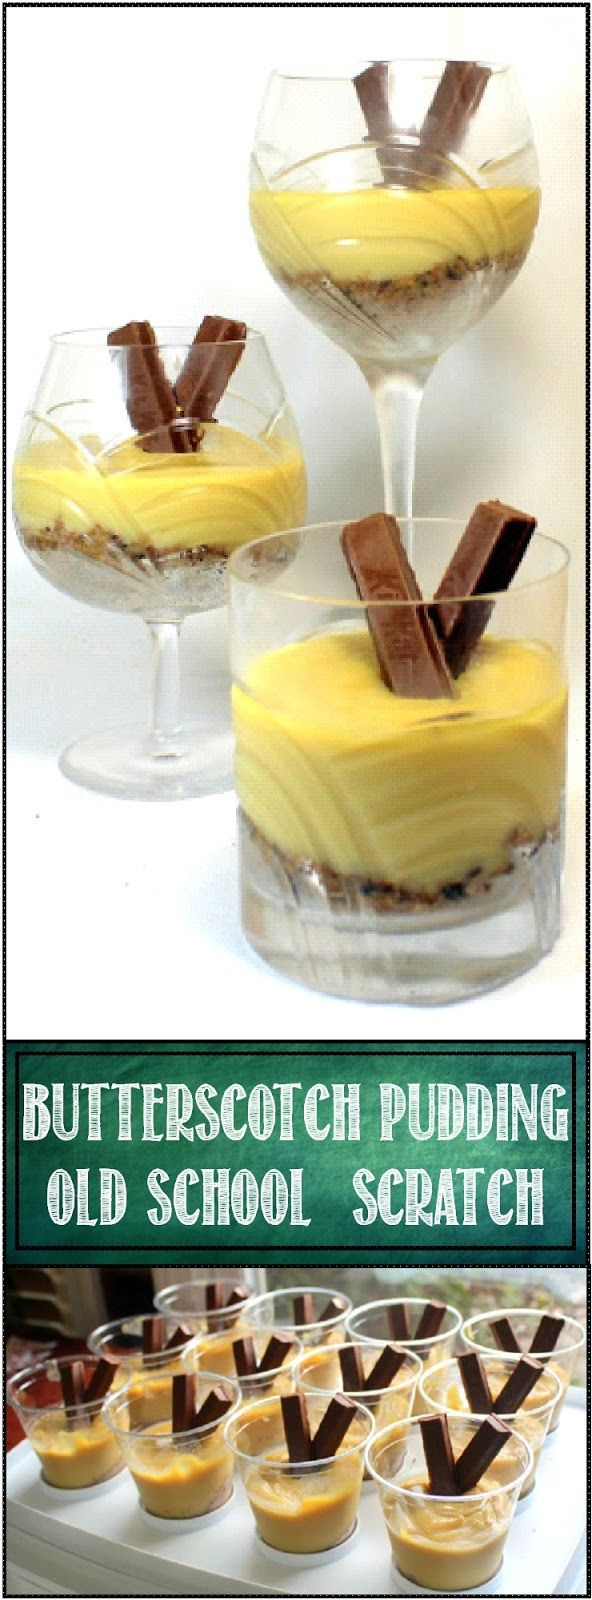 """Old School"" Butterscotch Pudding (Scratch Recipe) - 52 Snacks for Children's Church... Here's the old school TONS of flavor, so much more than the instant box versions! Served this up for Children's church AND as a Dessert for a grown up dinner party. EVERYONE Raved!"